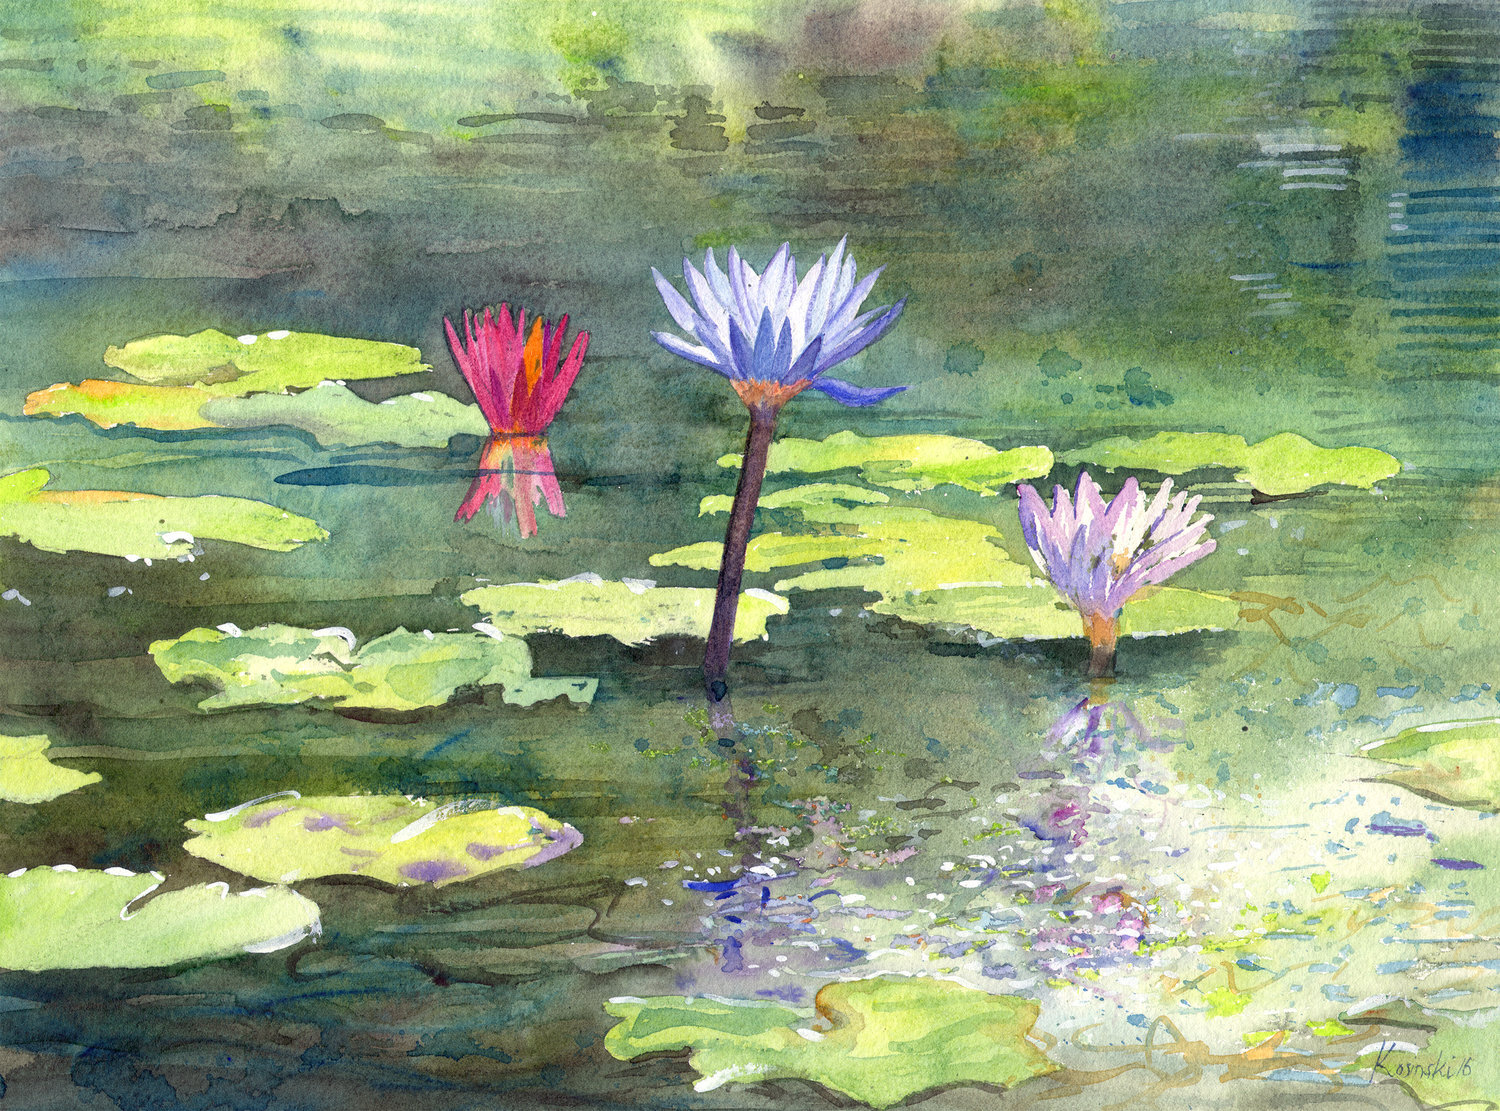 waterlilies - Brookgreen Gardens, SC